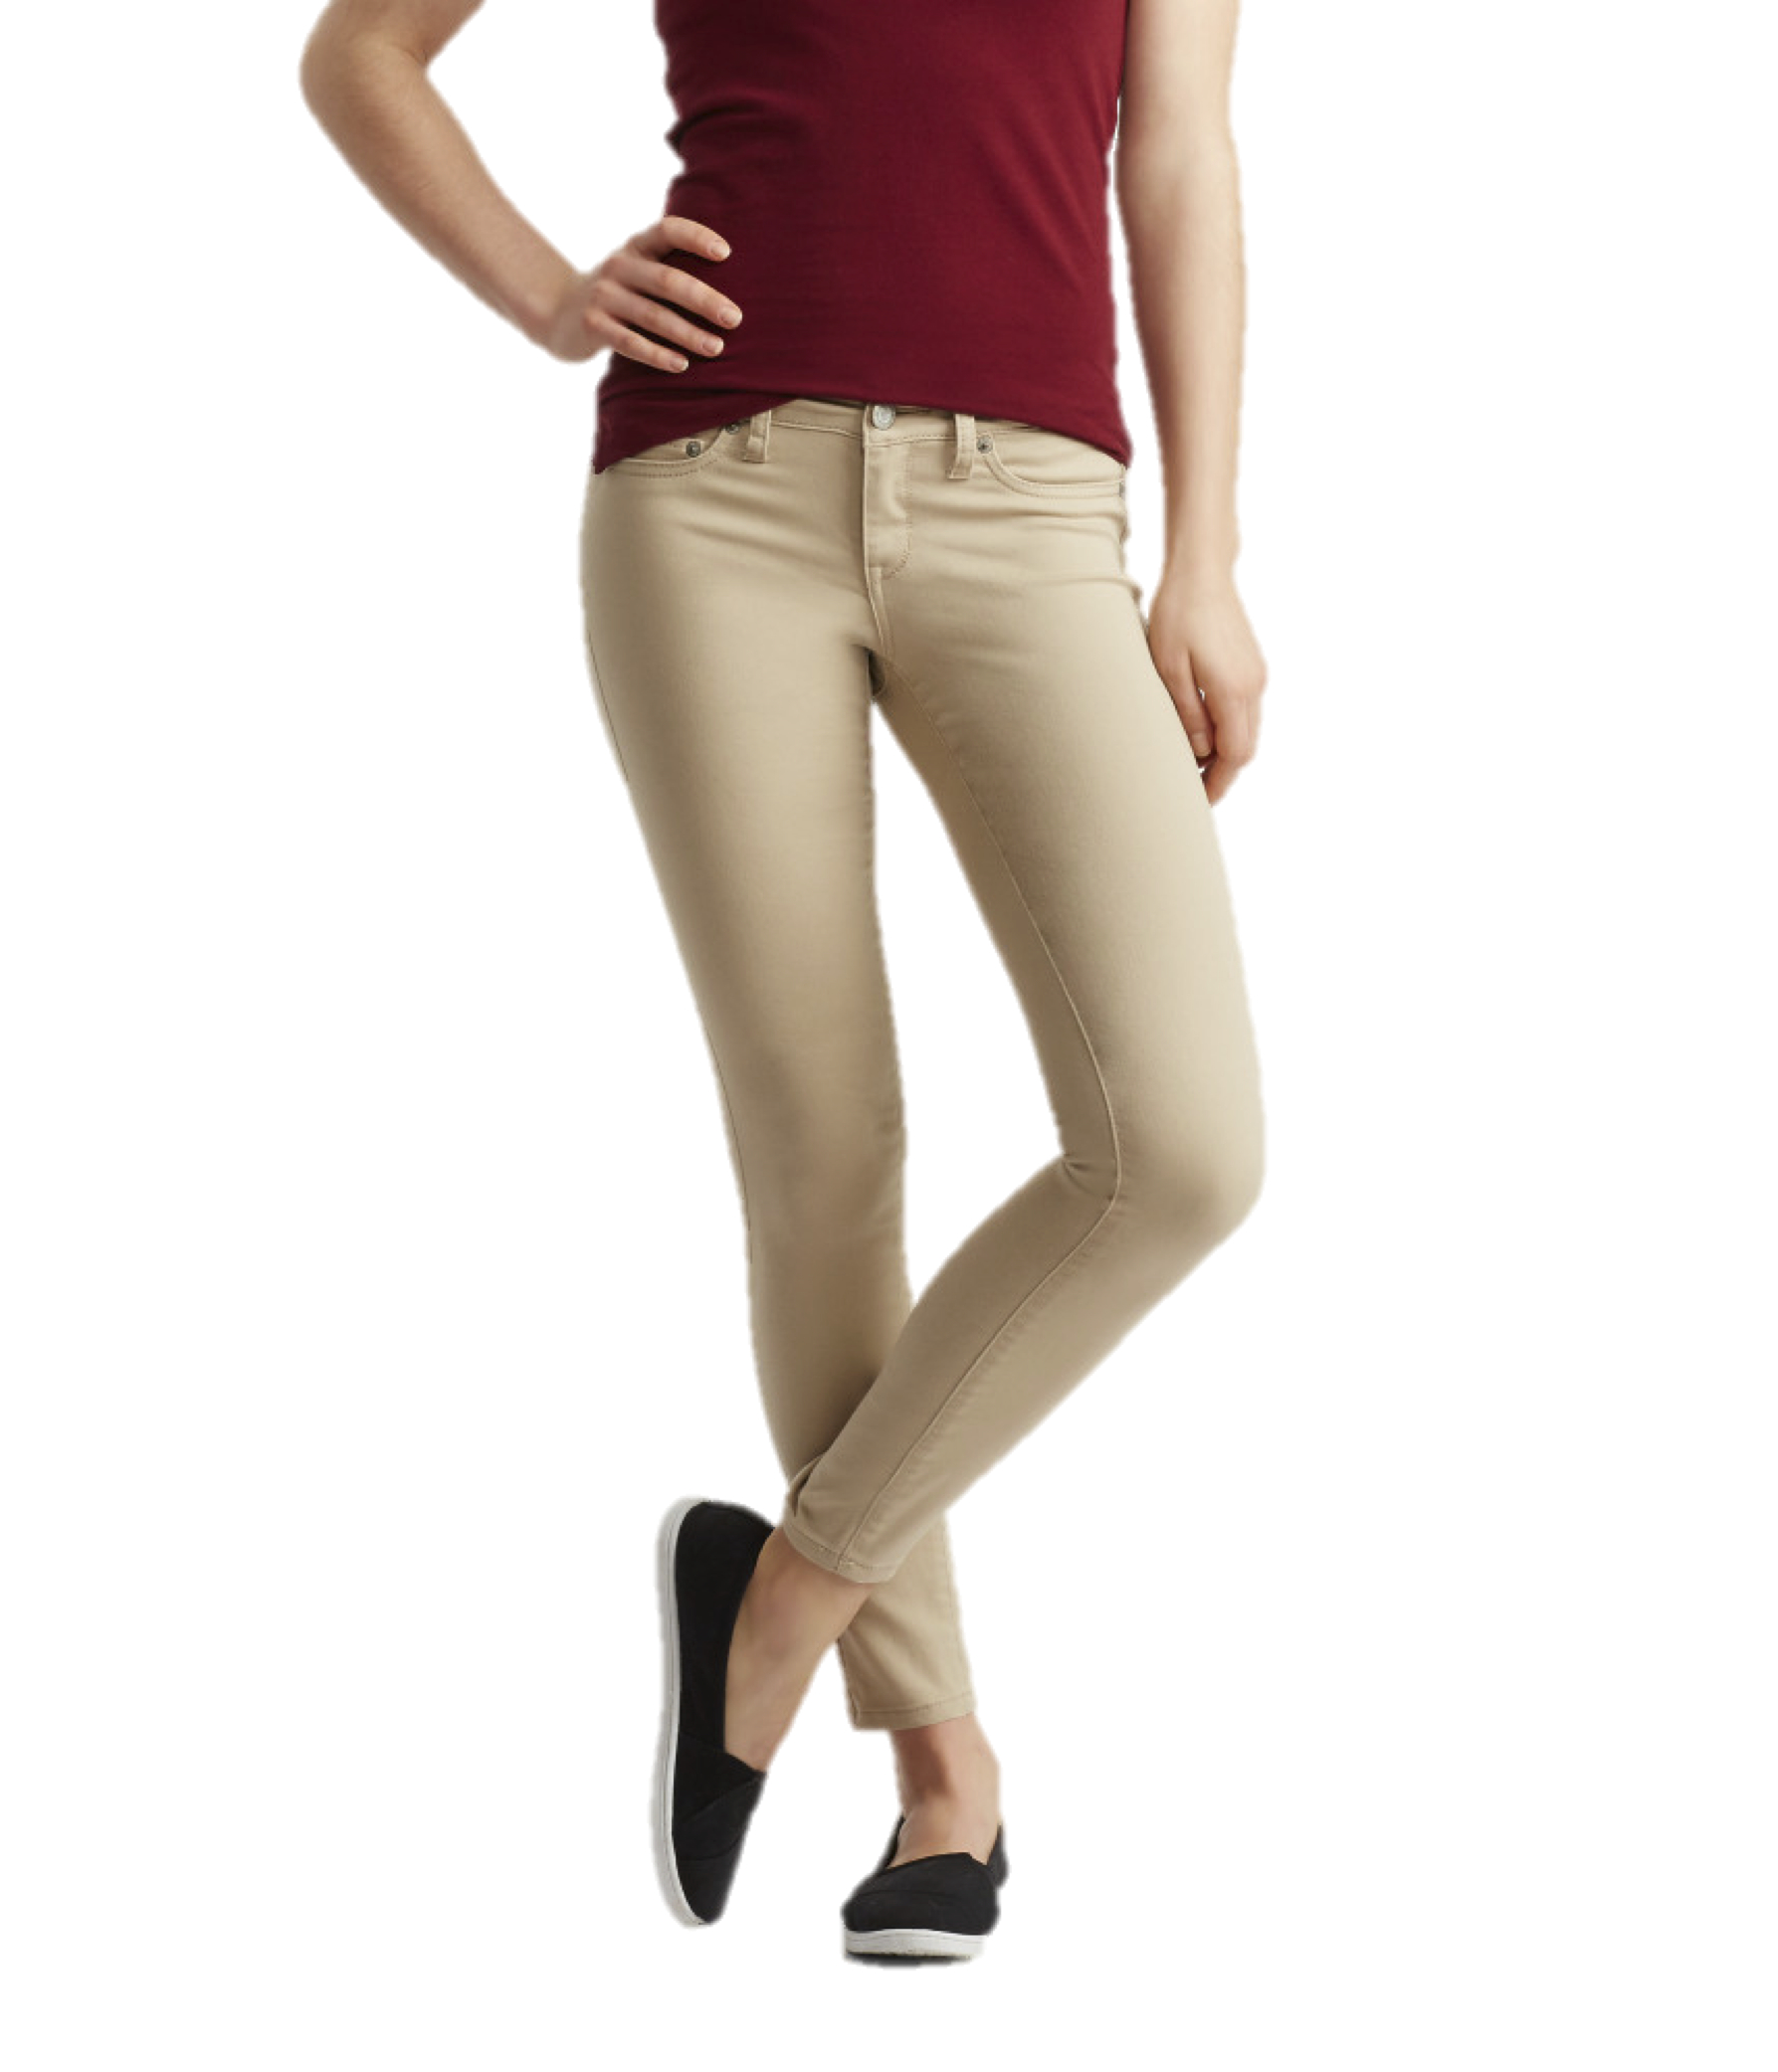 Wonderful AEROPOSTALE WOMENS KHAKI PANTS CHINOS CLASSIC SCHOOL